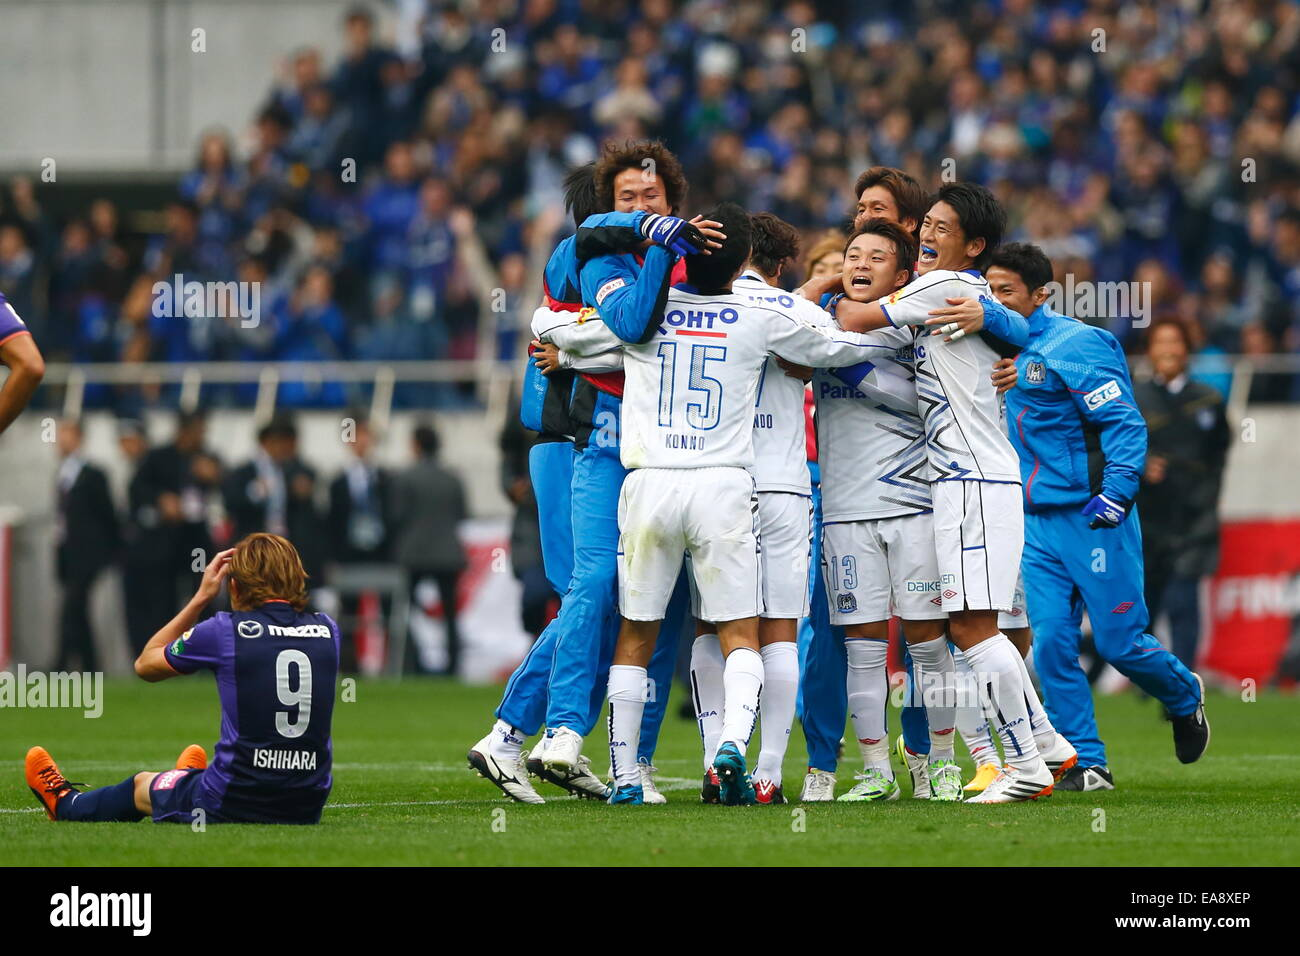 Saitama Japan 8th Nov 2014 Gamba Osaka Team Group Football Soccer Stock Photo Alamy